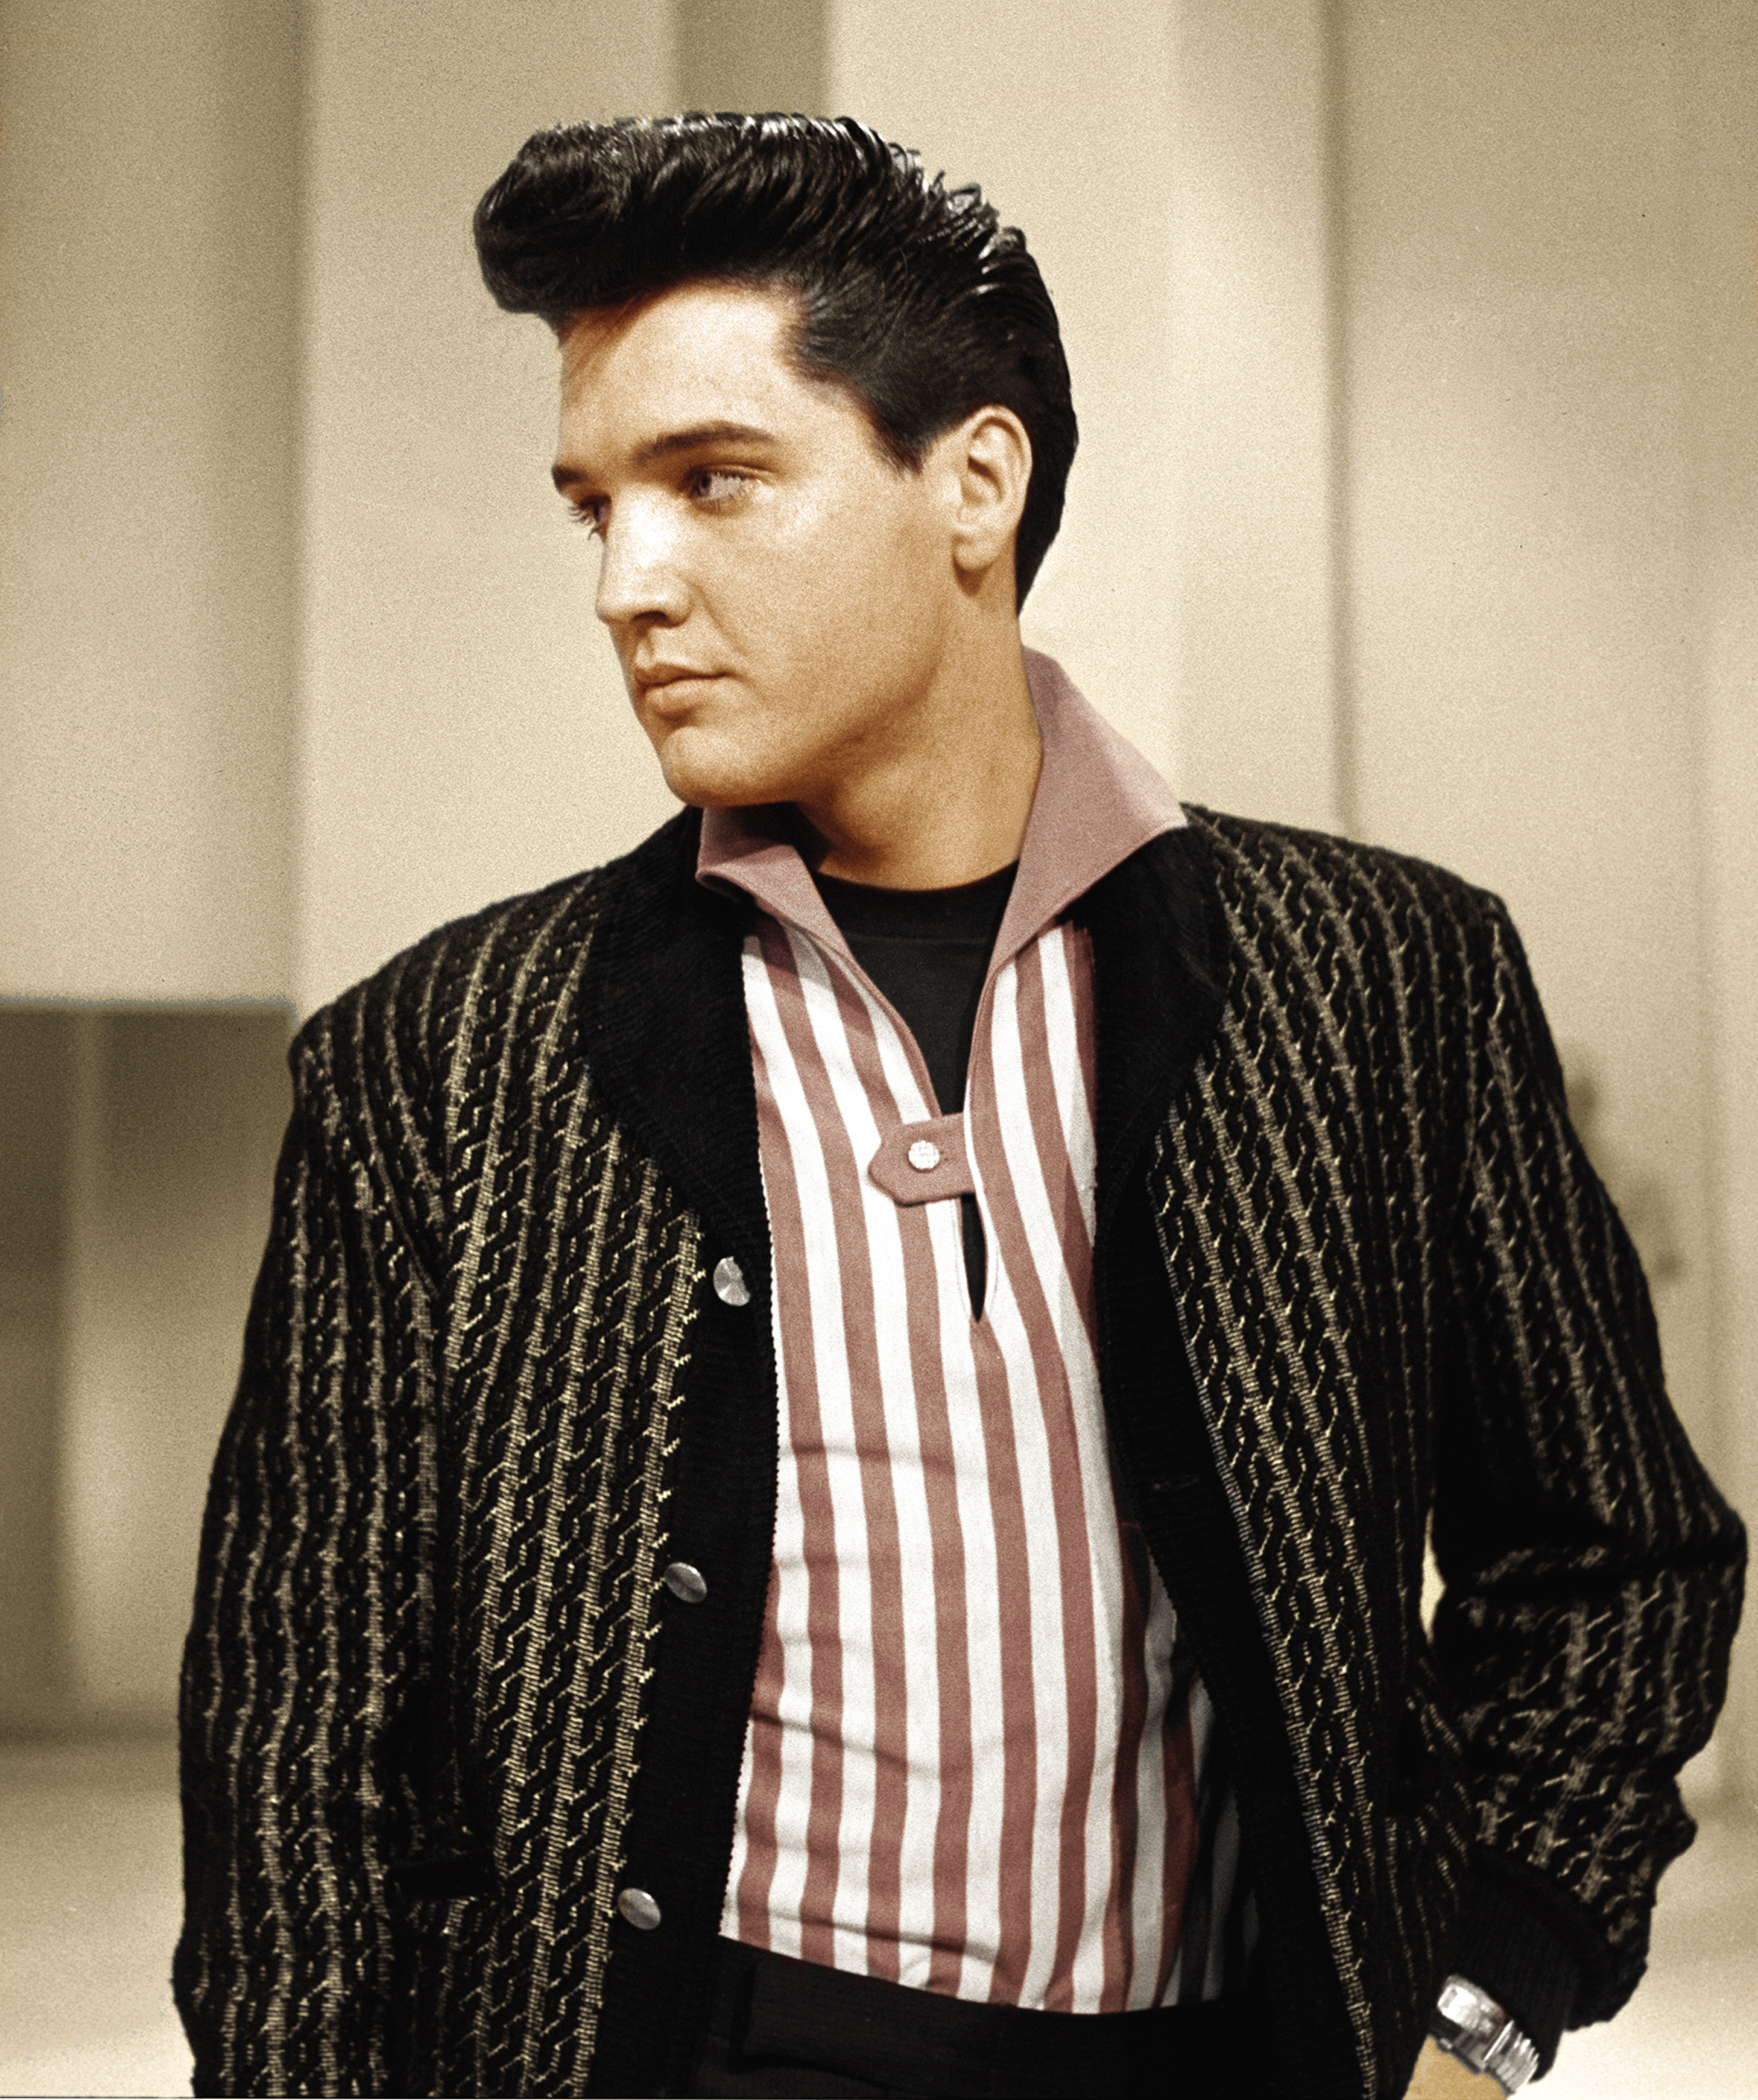 Elvis Presley 3 Copyright Elvis Presley Enterprises Inc